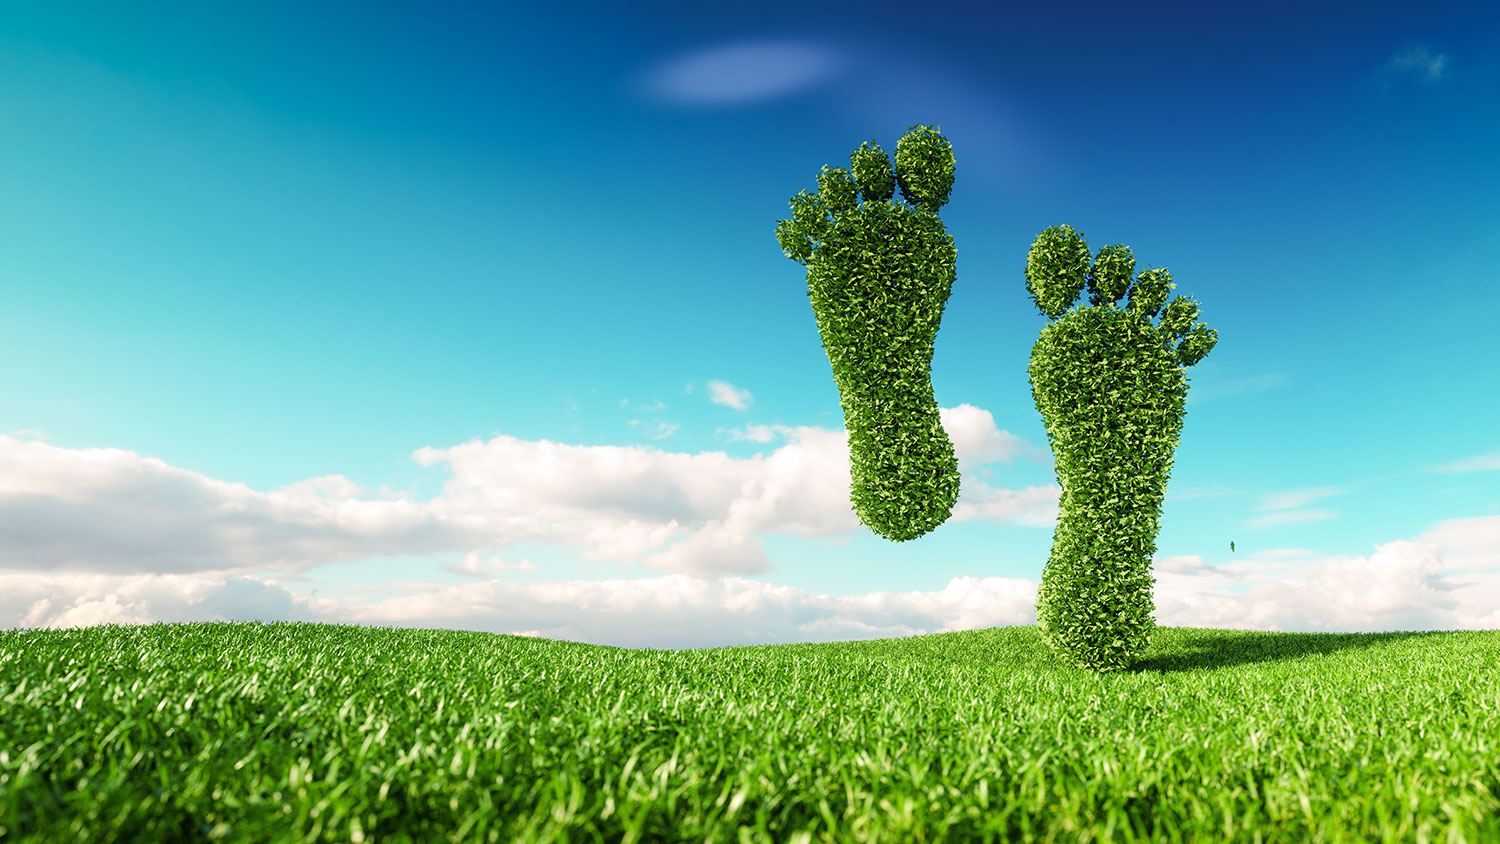 4 EASY WAYS TO REDUCE YOUR CARBON FOOTPRINT